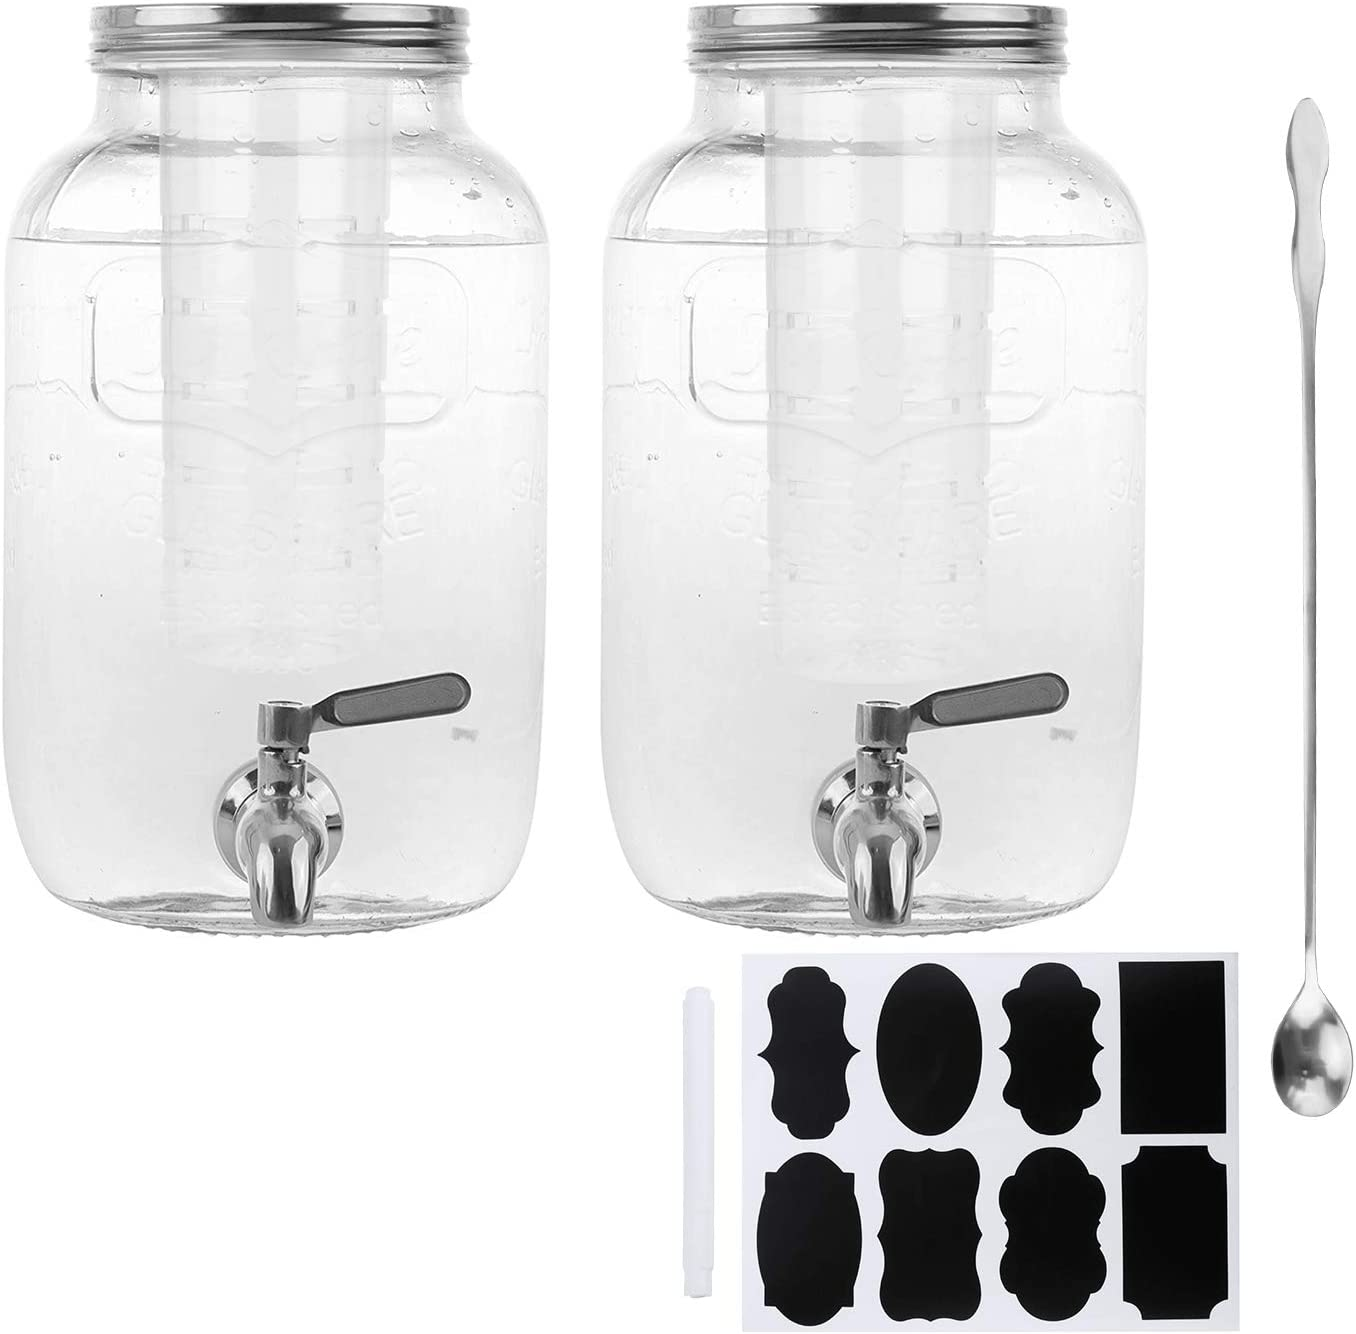 1 Gallon / 4000ml Clear Mason Jar With Lids, Airtight Glass Jars With Stainless Water Faucet and Ice Cylinder Perfect for Beer, Sun Tea, Coffee, Coke and Cold Drinks, 2 pack